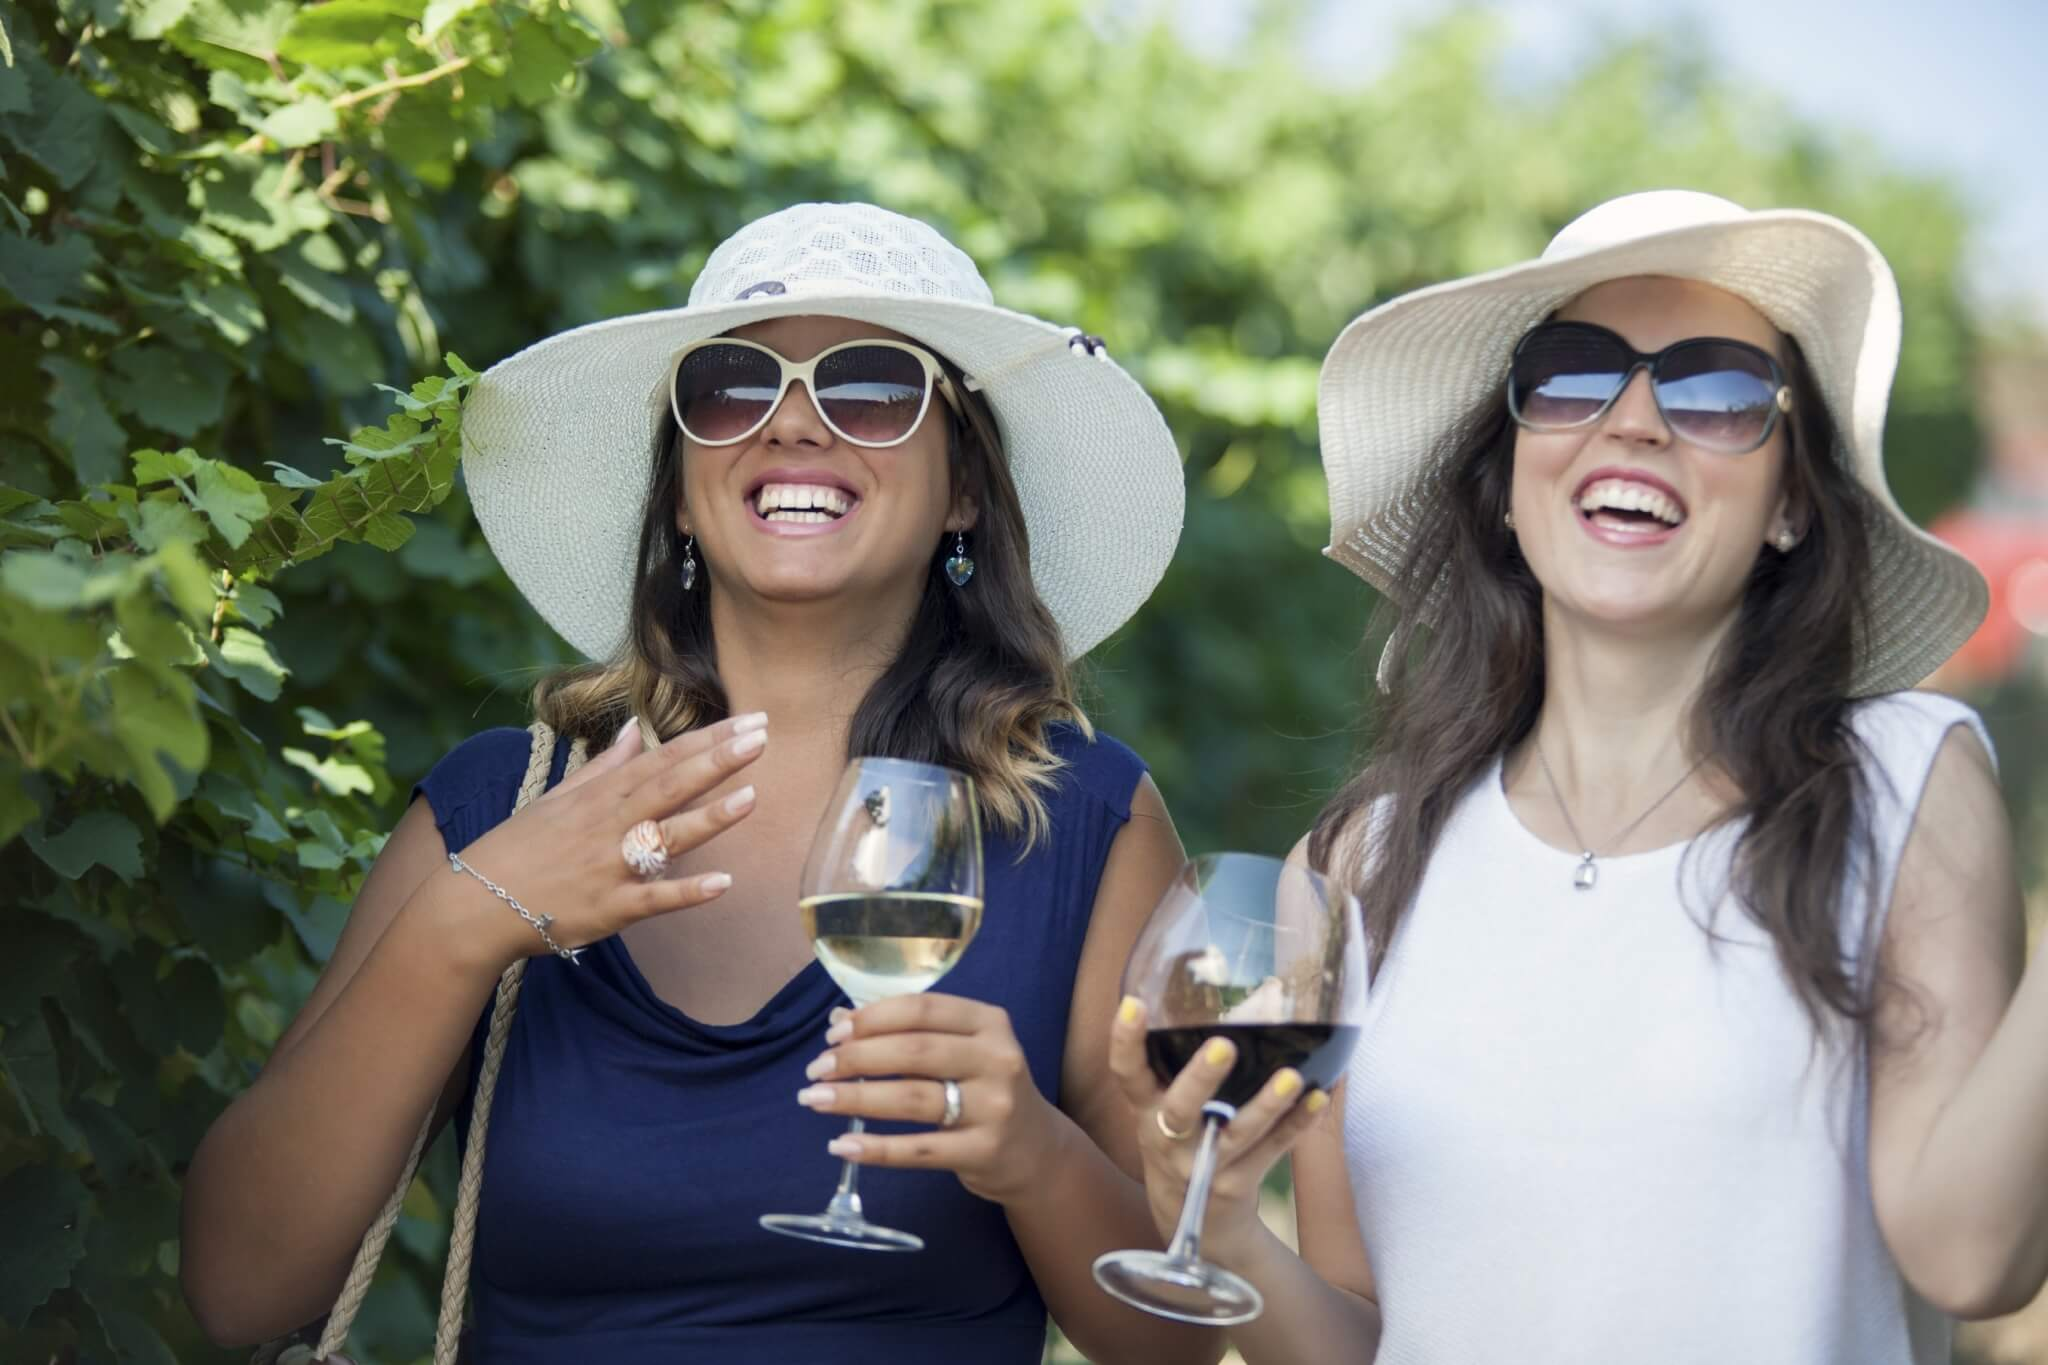 Two-cheerful-women-laughing-and-drinking-wine-in-vineyard-000073036933_Large.jpg.jpeg